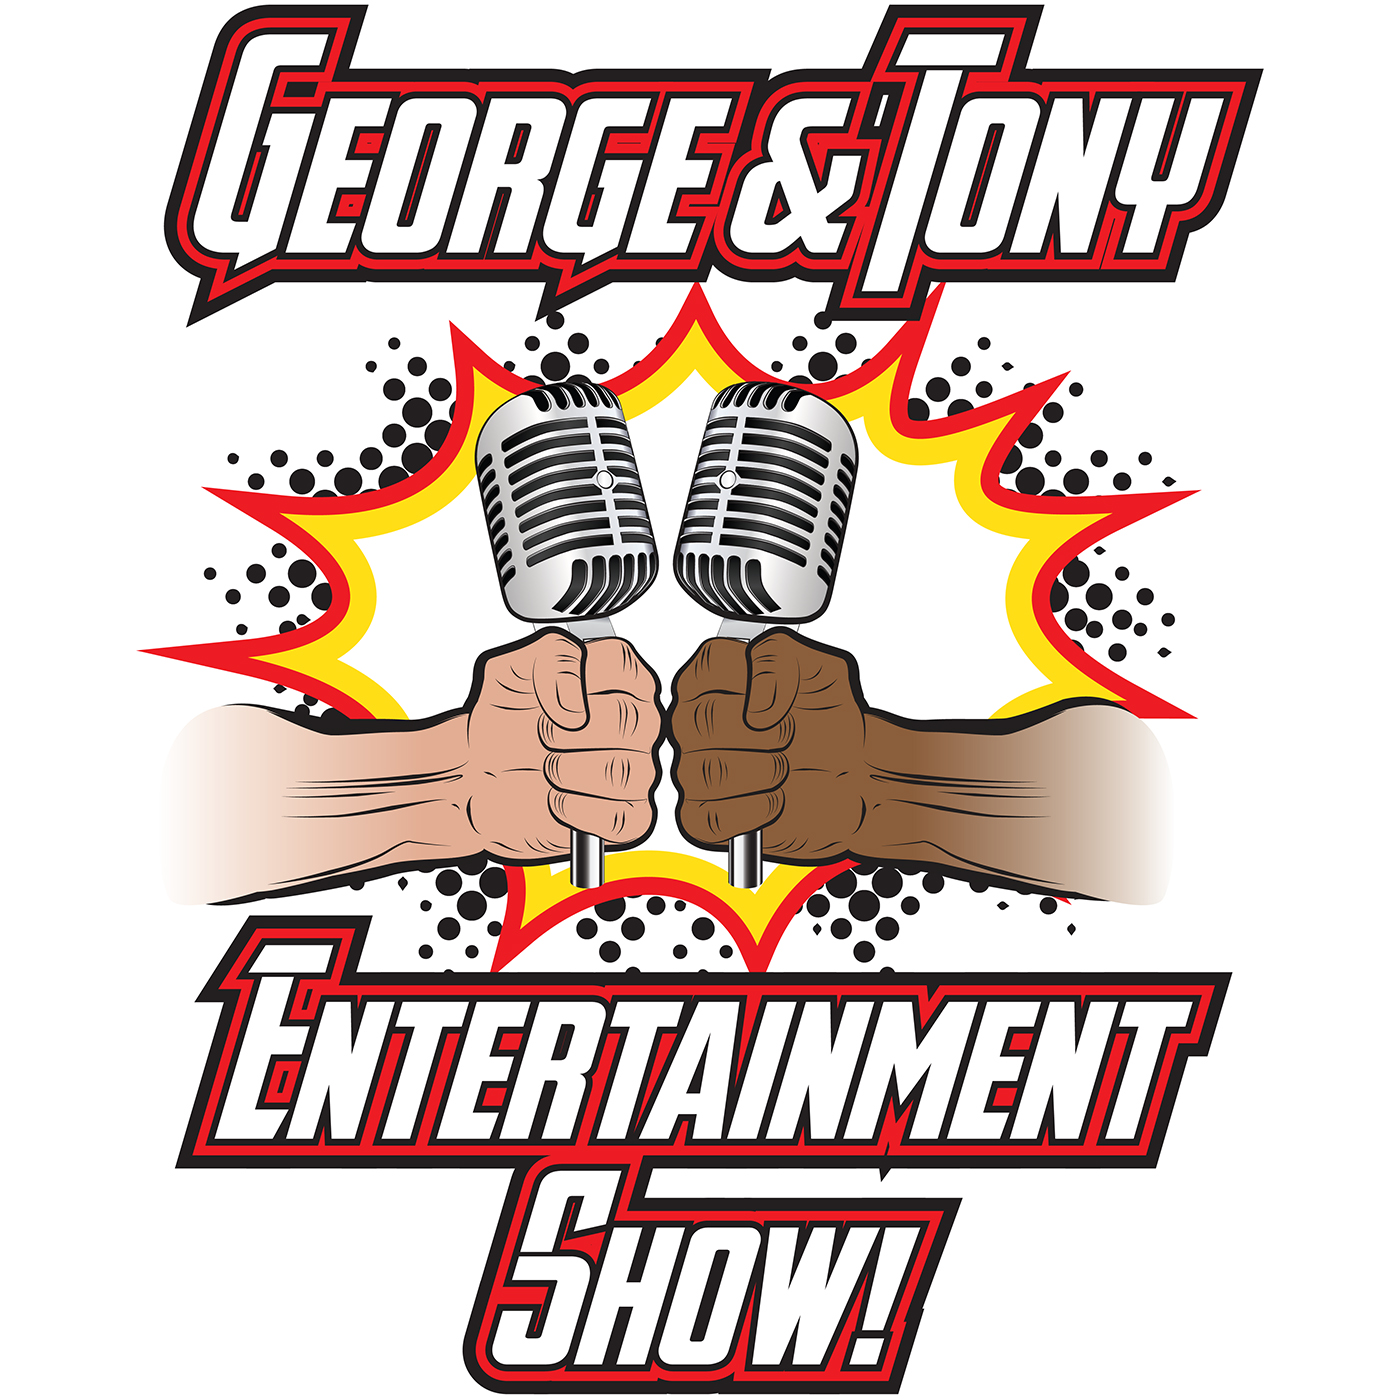 George and Tony Entertainment Show #86